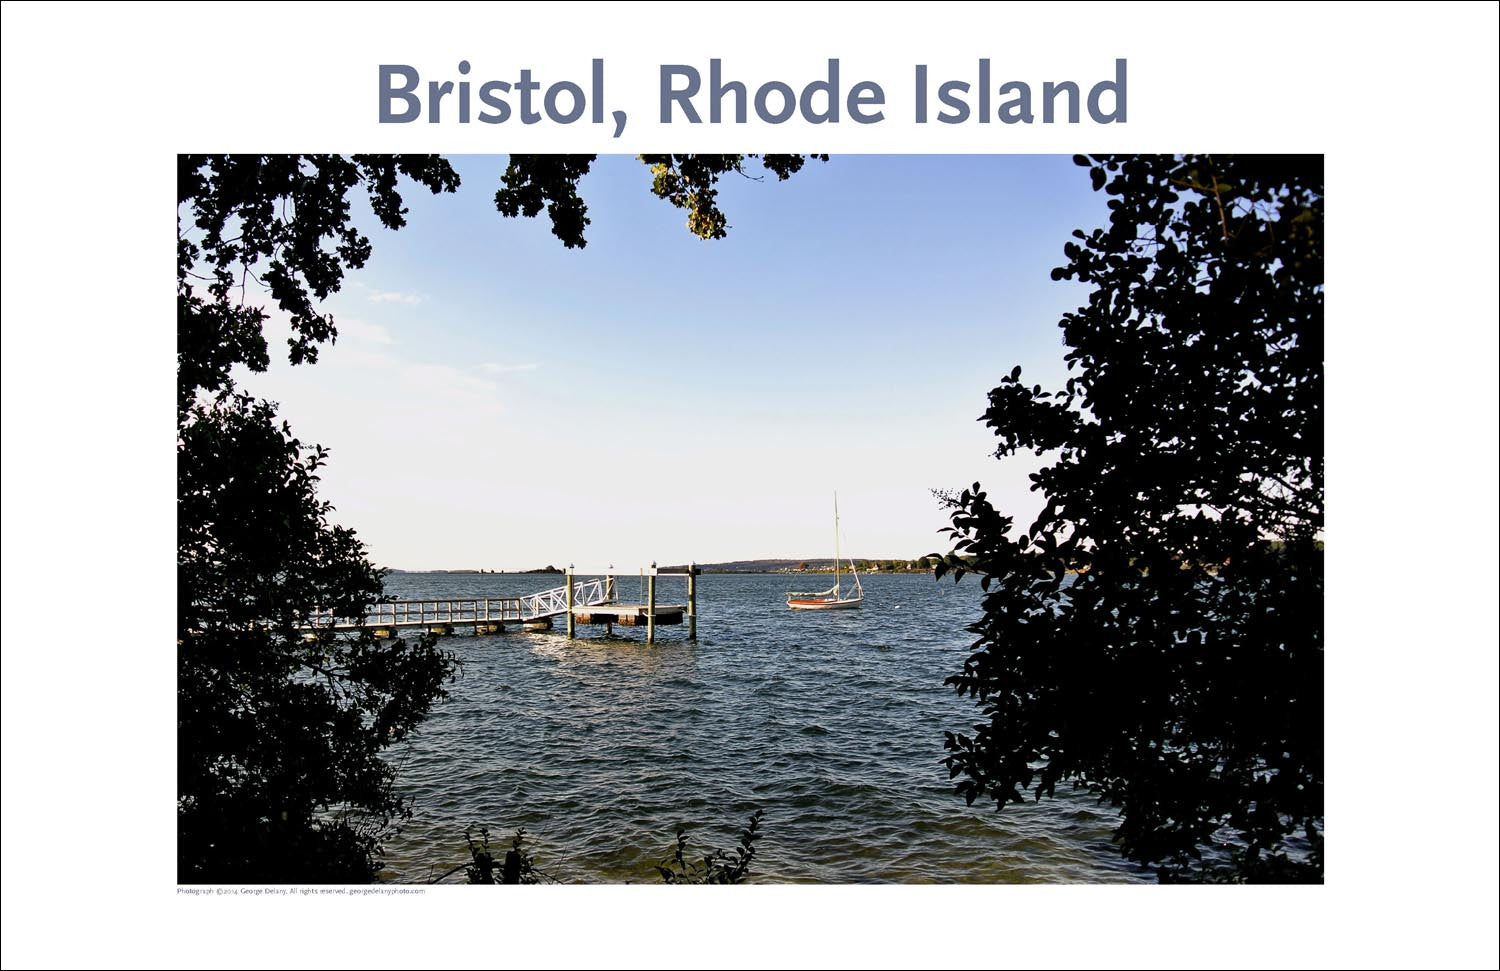 Bristol, Rhode Island, Place Photo Poster Collection #198